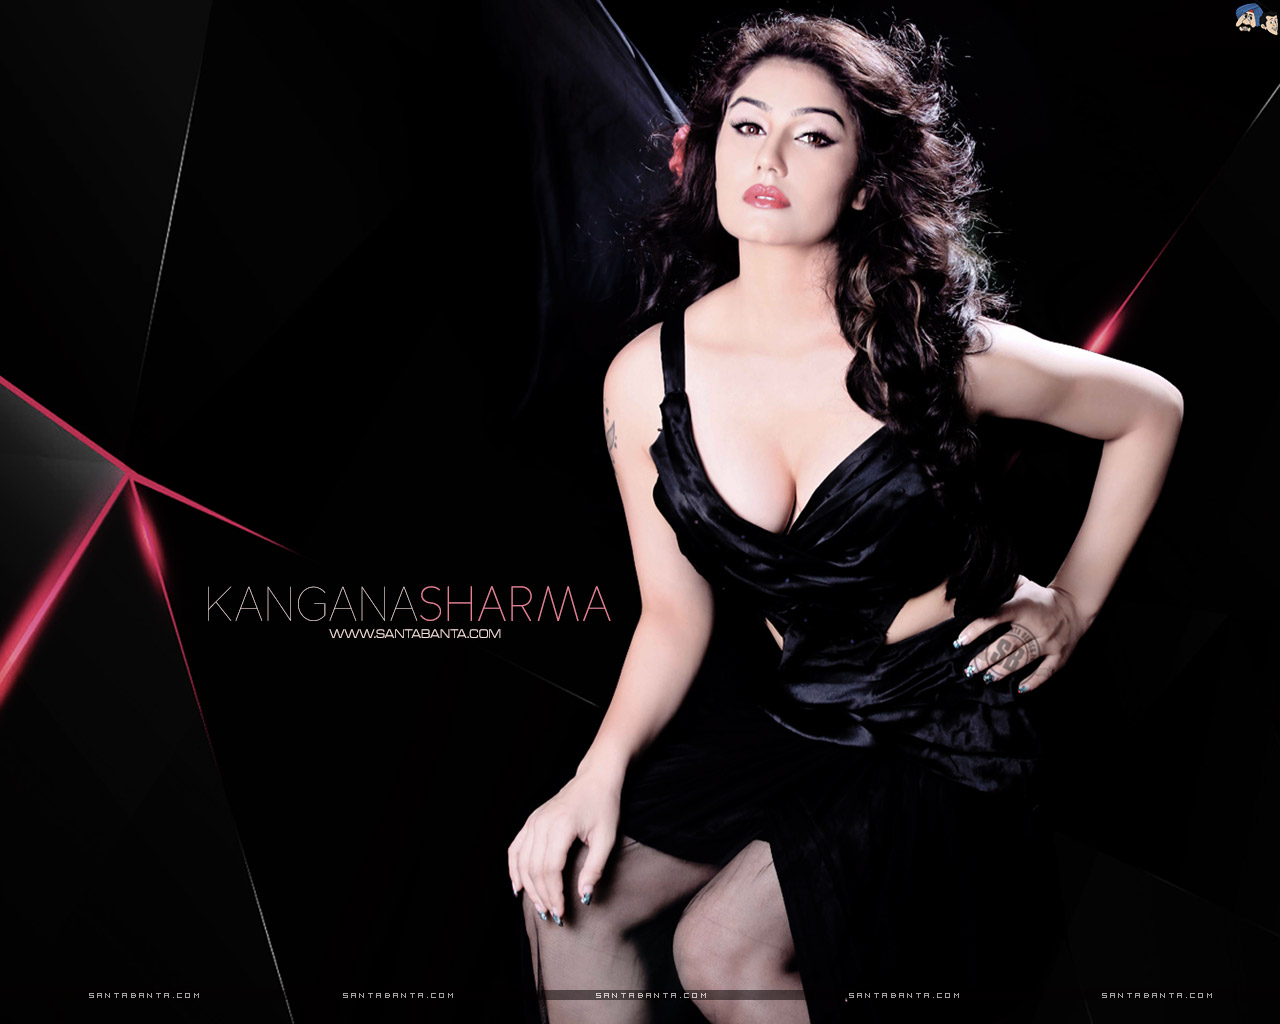 Cute Indian Baby Wallpapers Kangana Sharma Hd Wallpapers Most Beautiful Places In